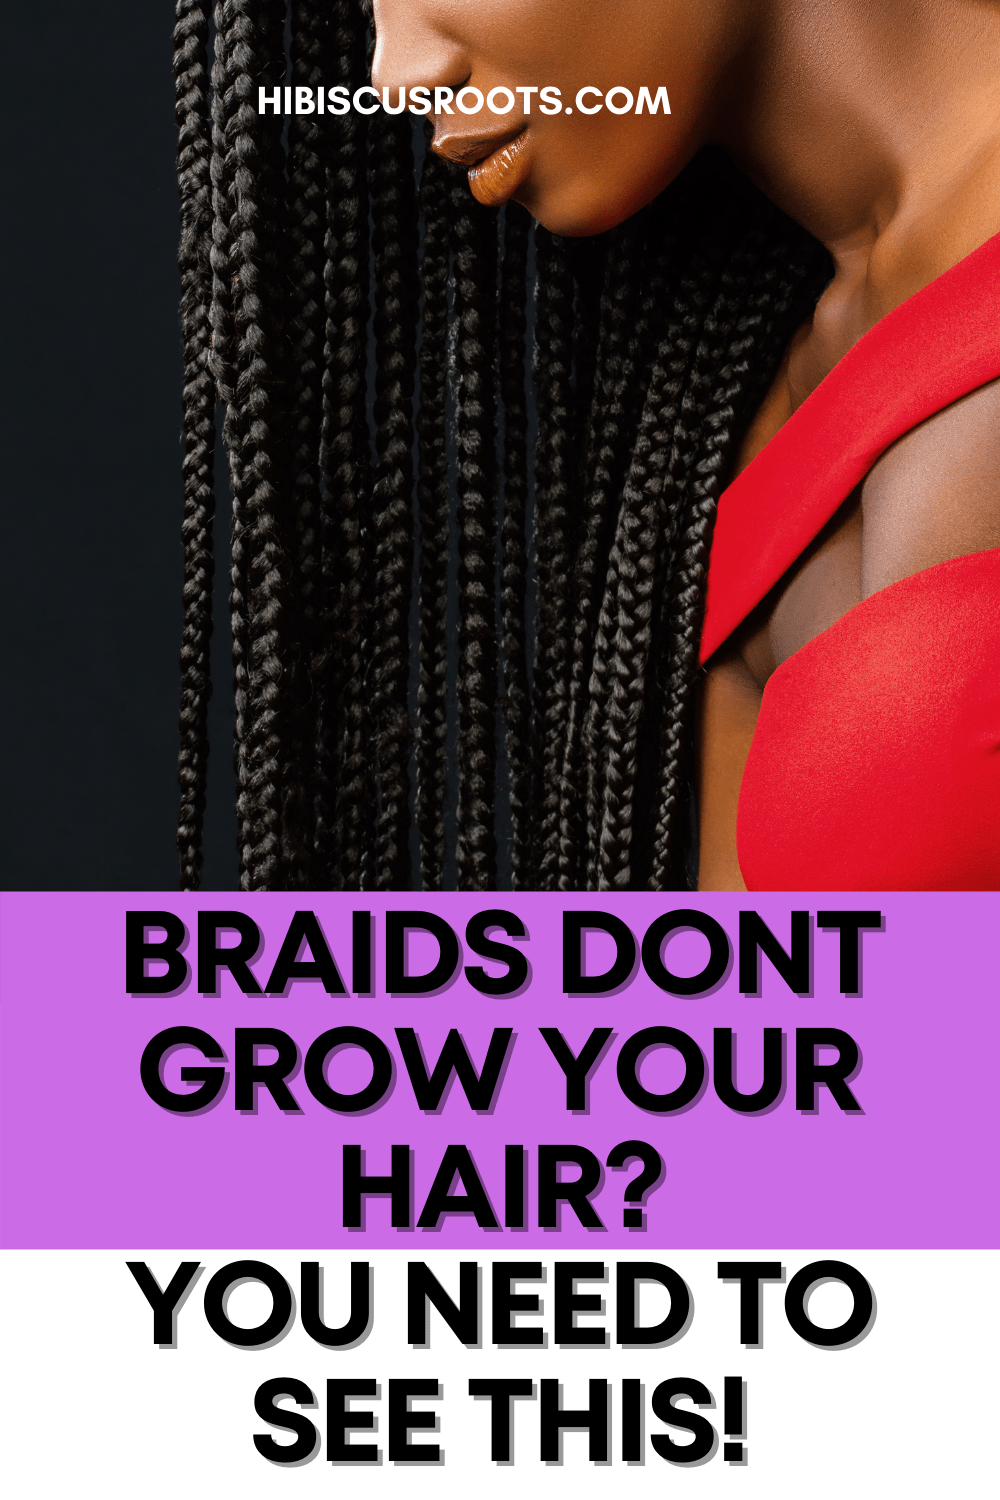 13 Best Ways to Care for Natural Hair Before, During, & After Braids!